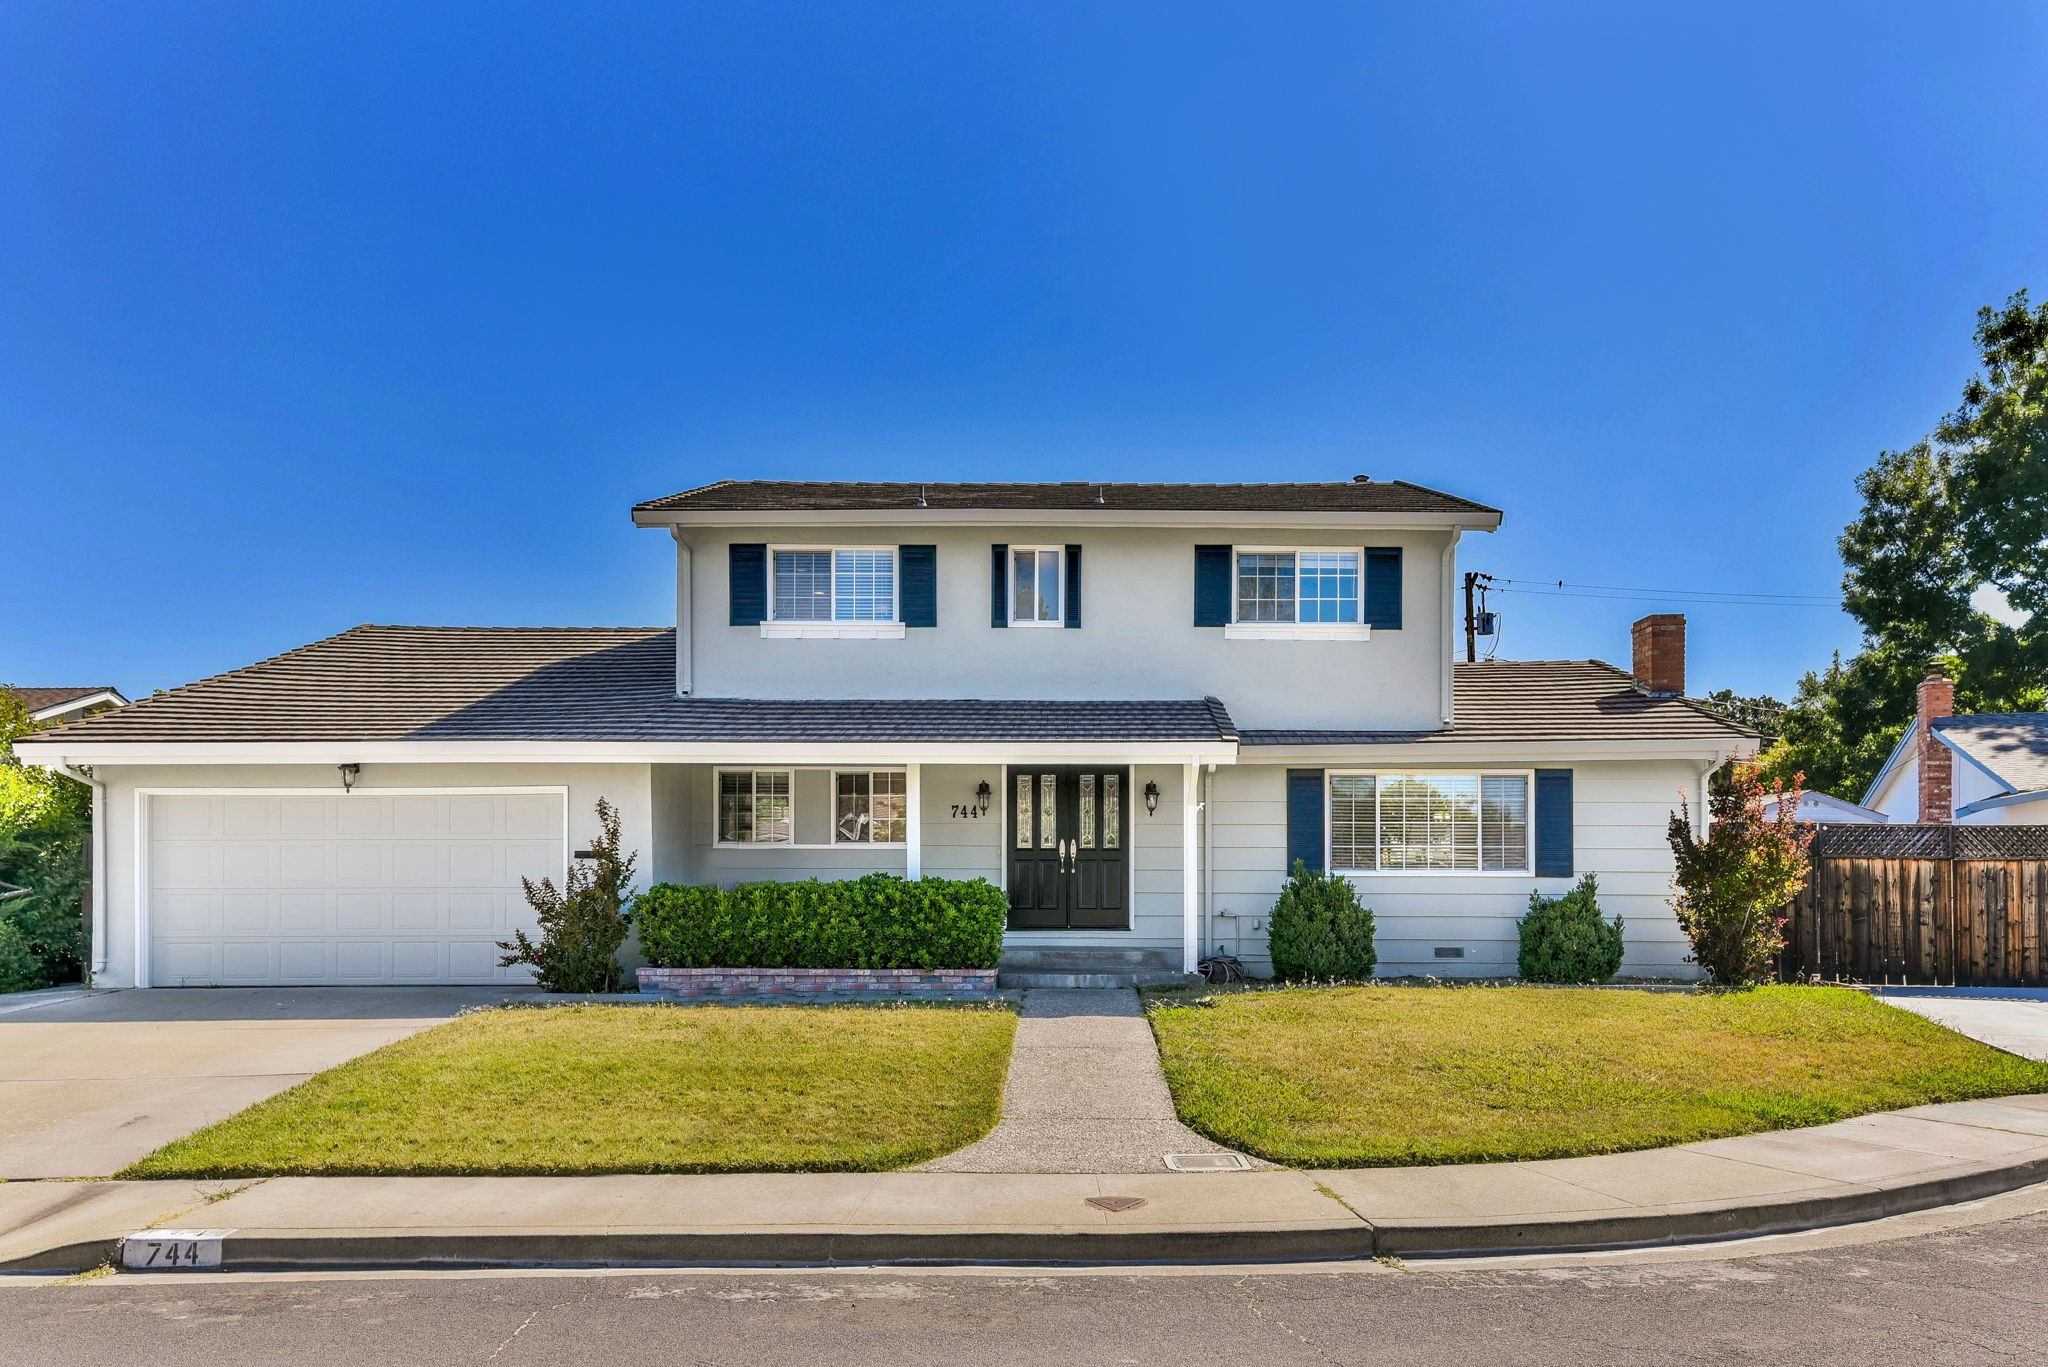 Spacious and Updated Home in Desirable Ygnacio Wood at Walnut Creek Border